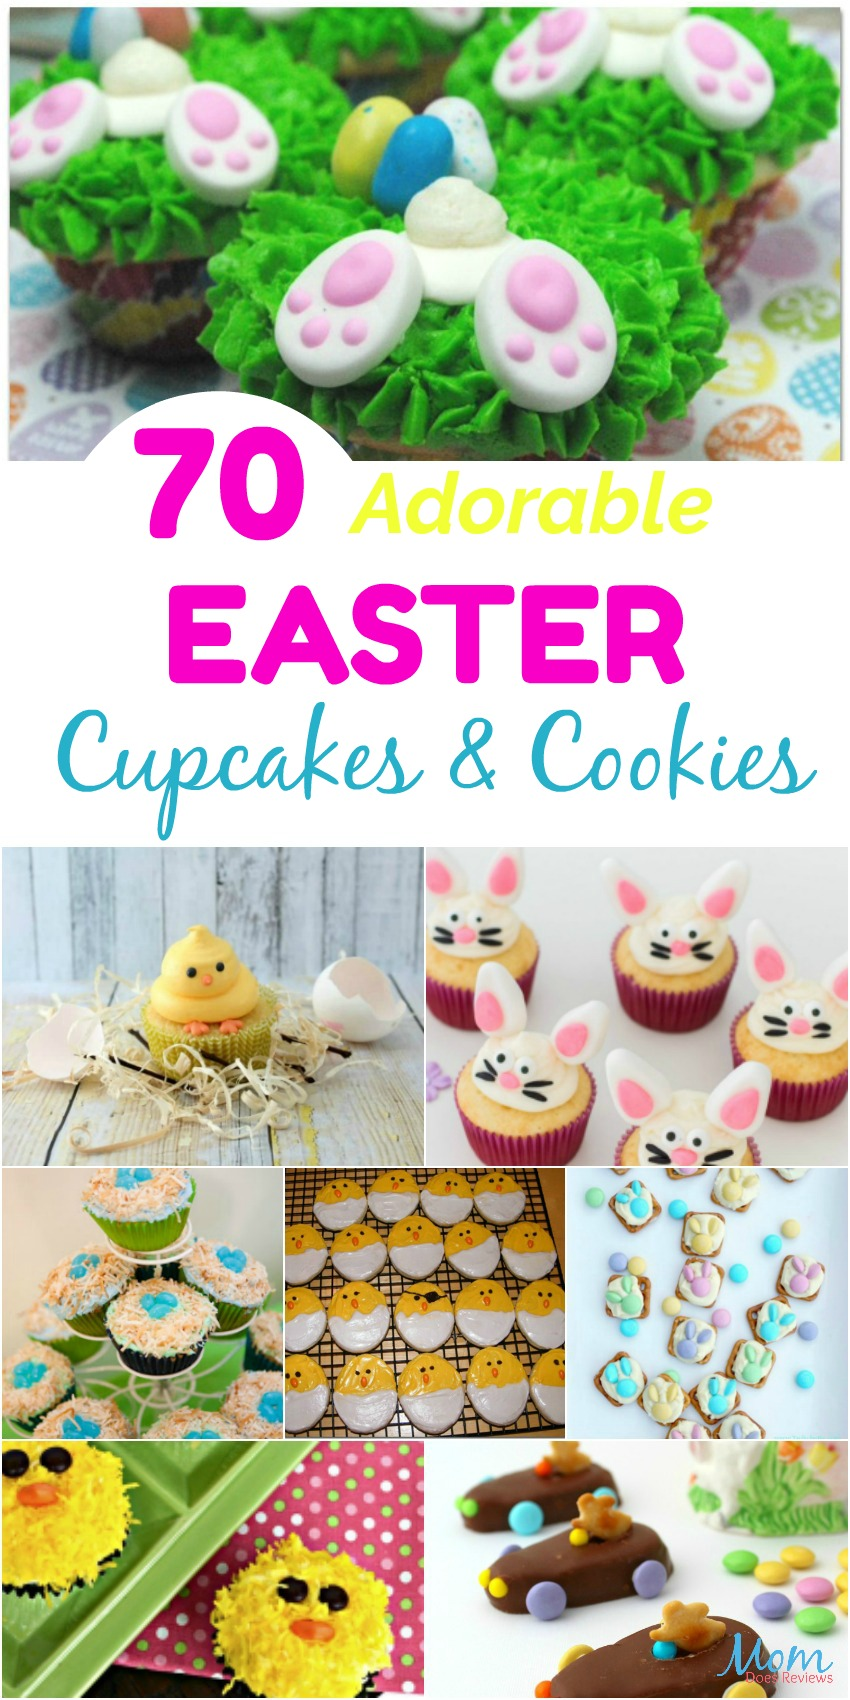 70 Adorable Easter Cupcakes & Cookies that will Bring a Smile #cookies #cupcakes #recipes #easter #sweettreats #getinmybelly #funfood